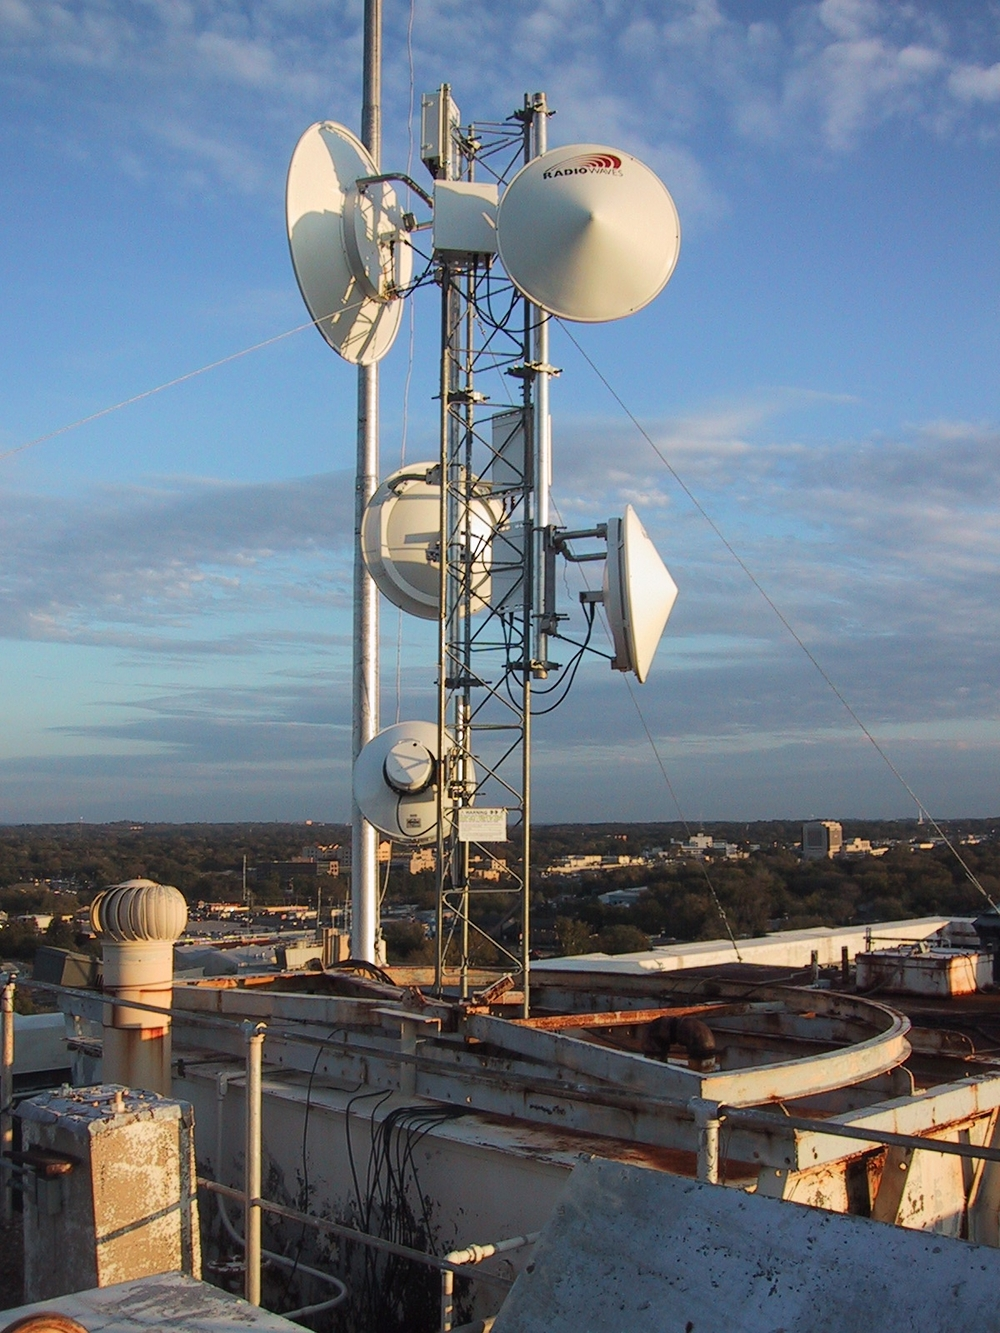 Installation of Microwave Internet Services